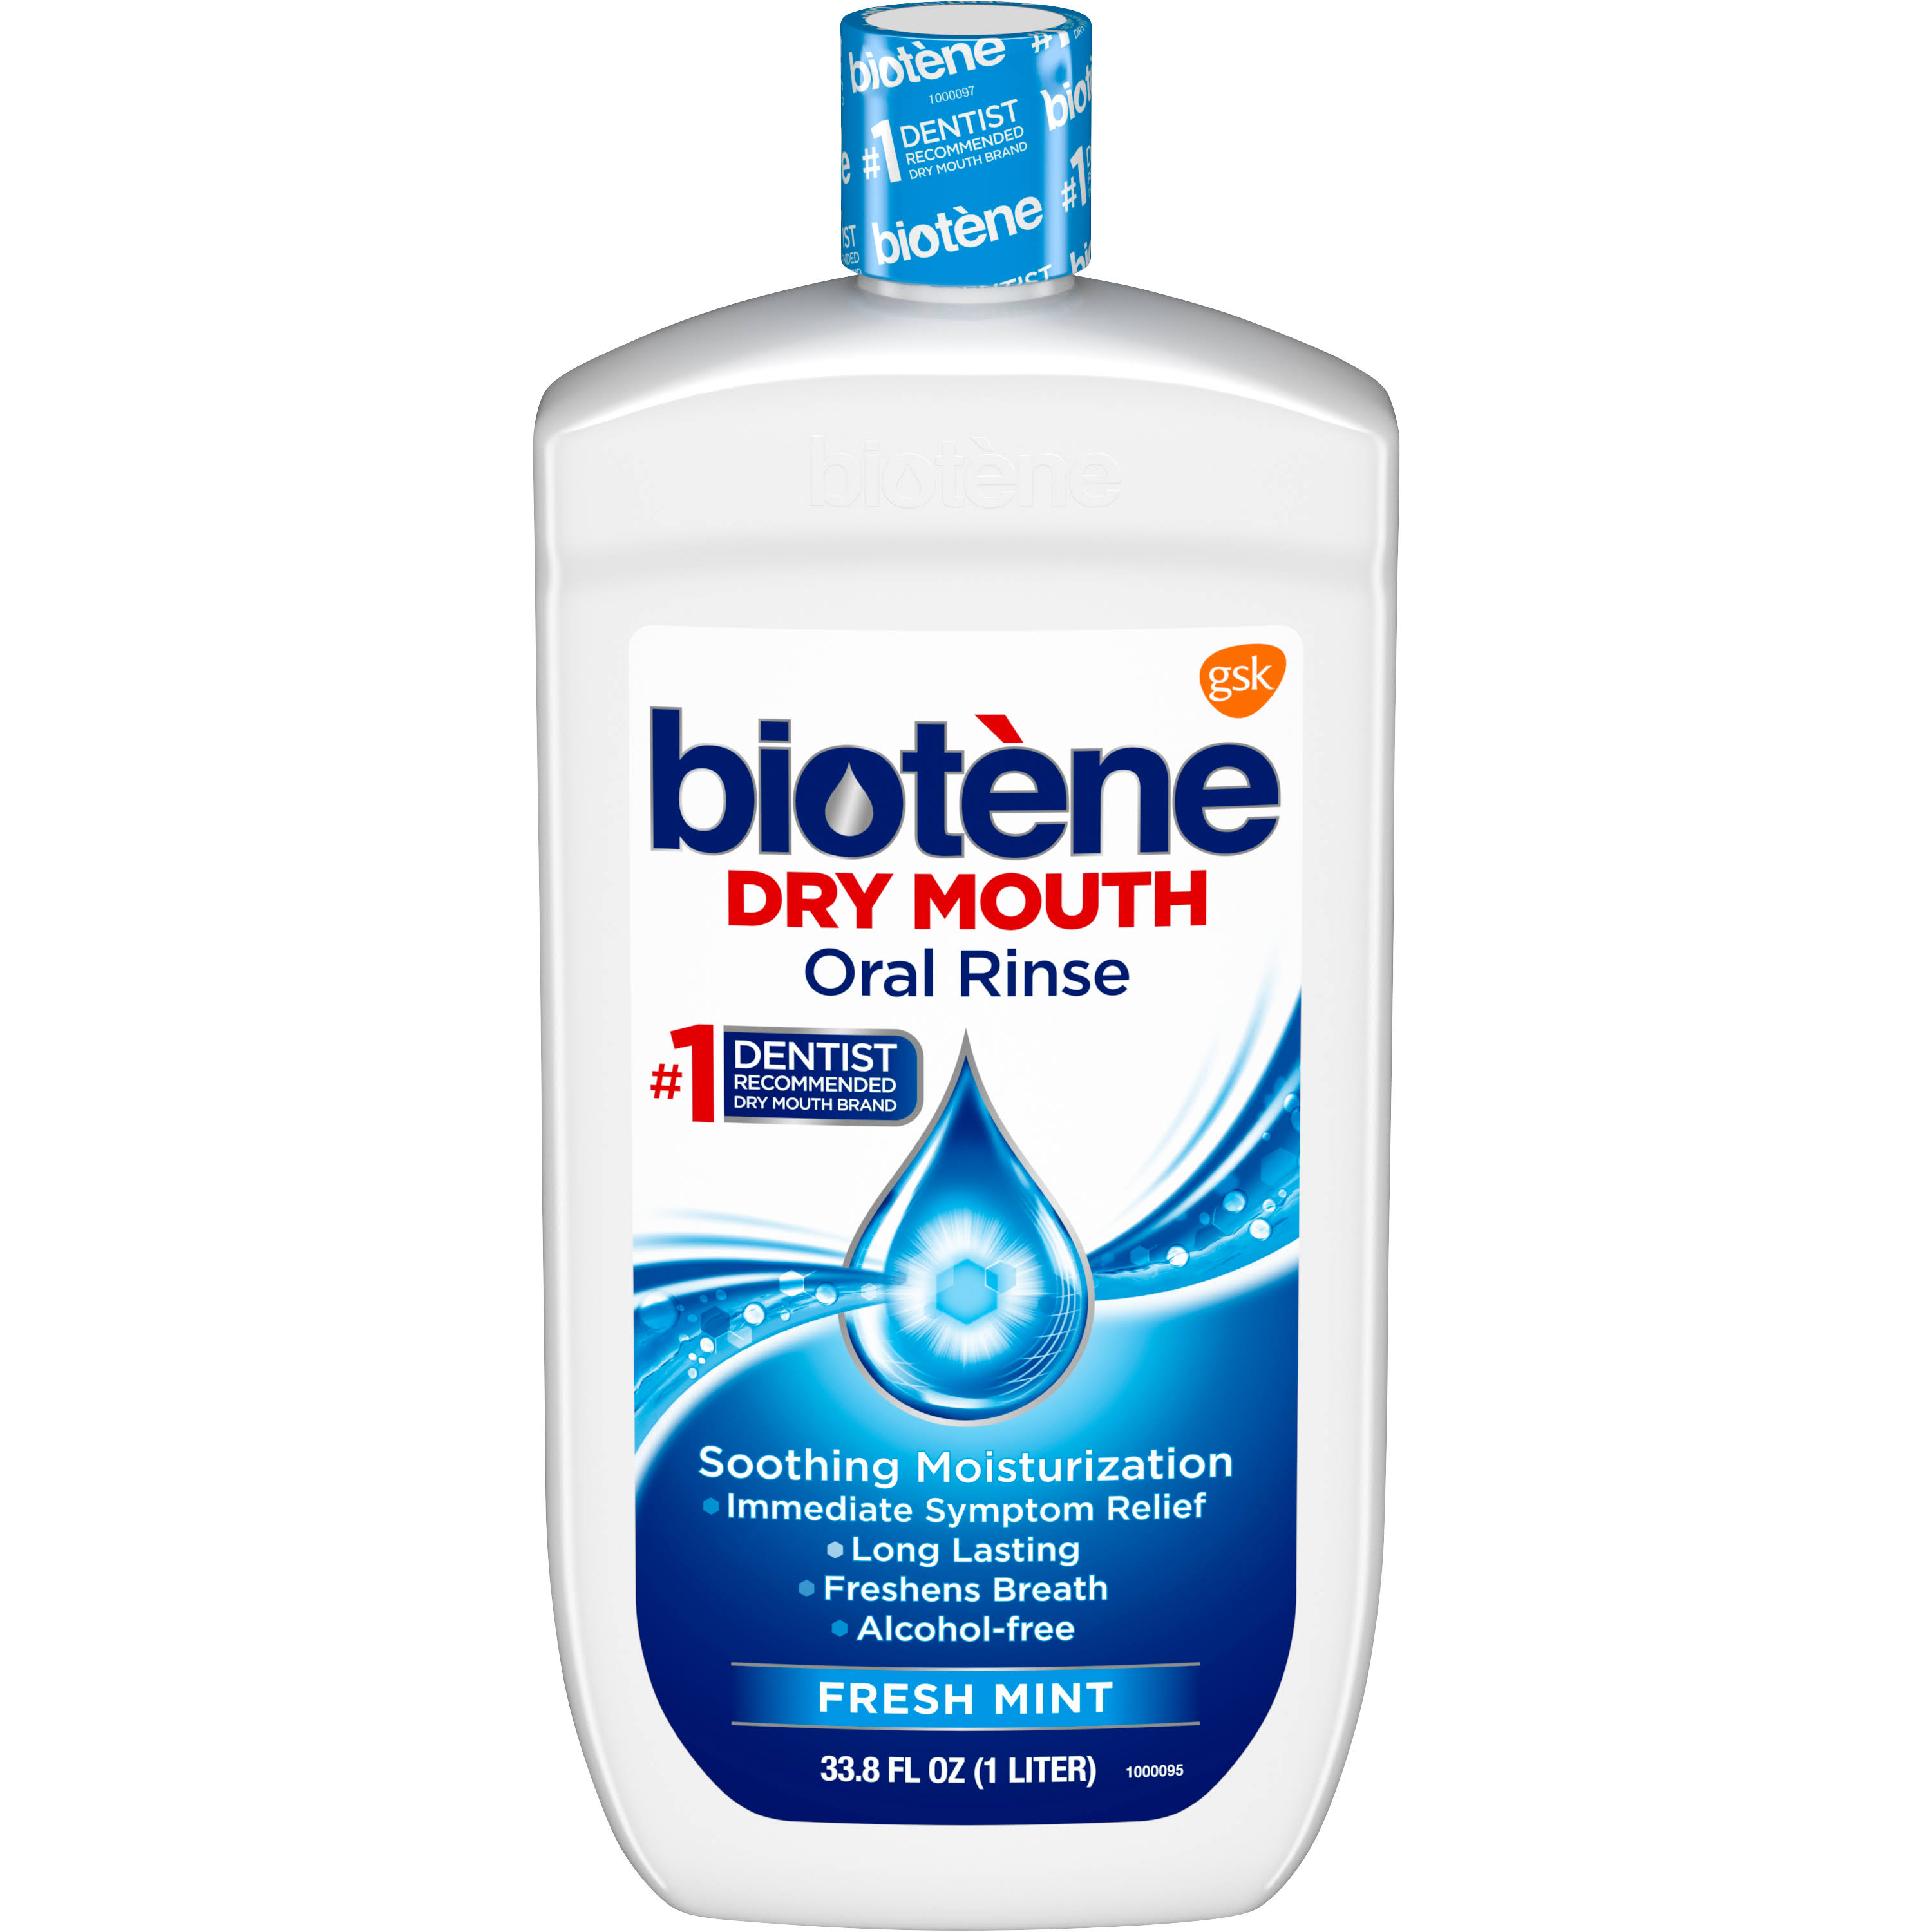 Biotène Dry Mouth Oral Rinse - Fresh Mint, 33.8oz